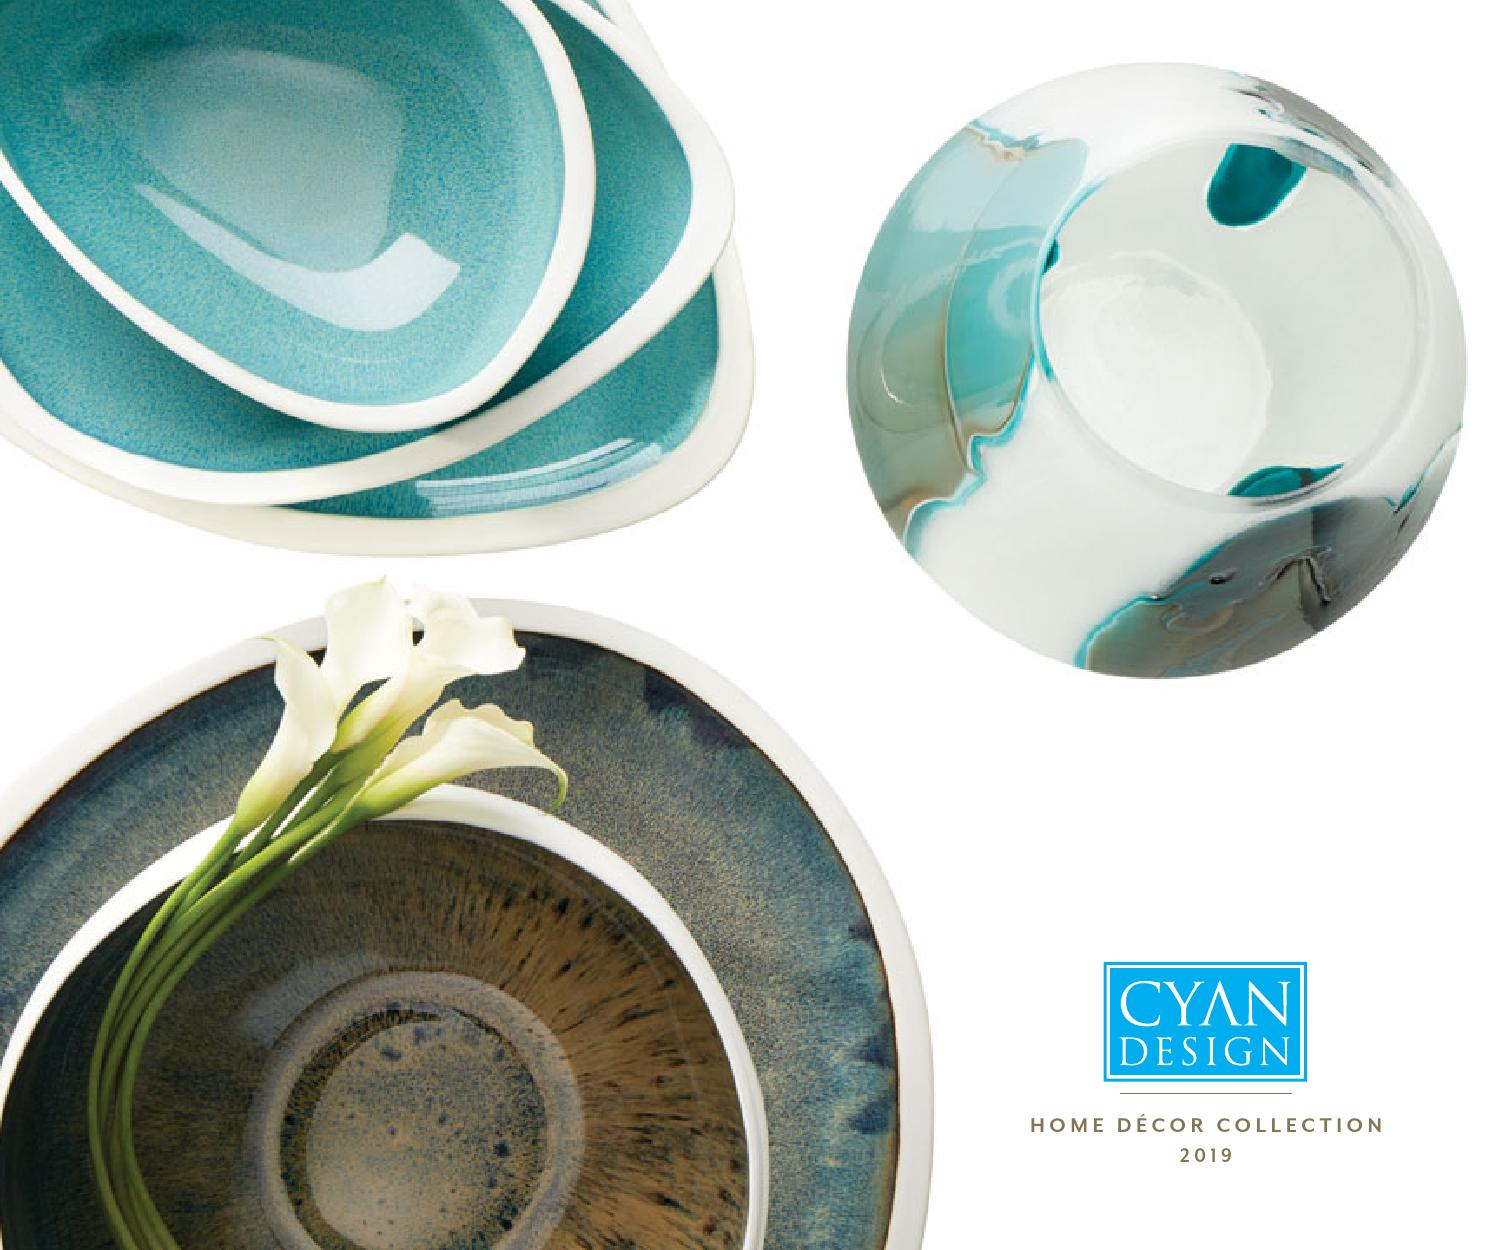 Cyan Design Small Rogue Vases and Planters 09986